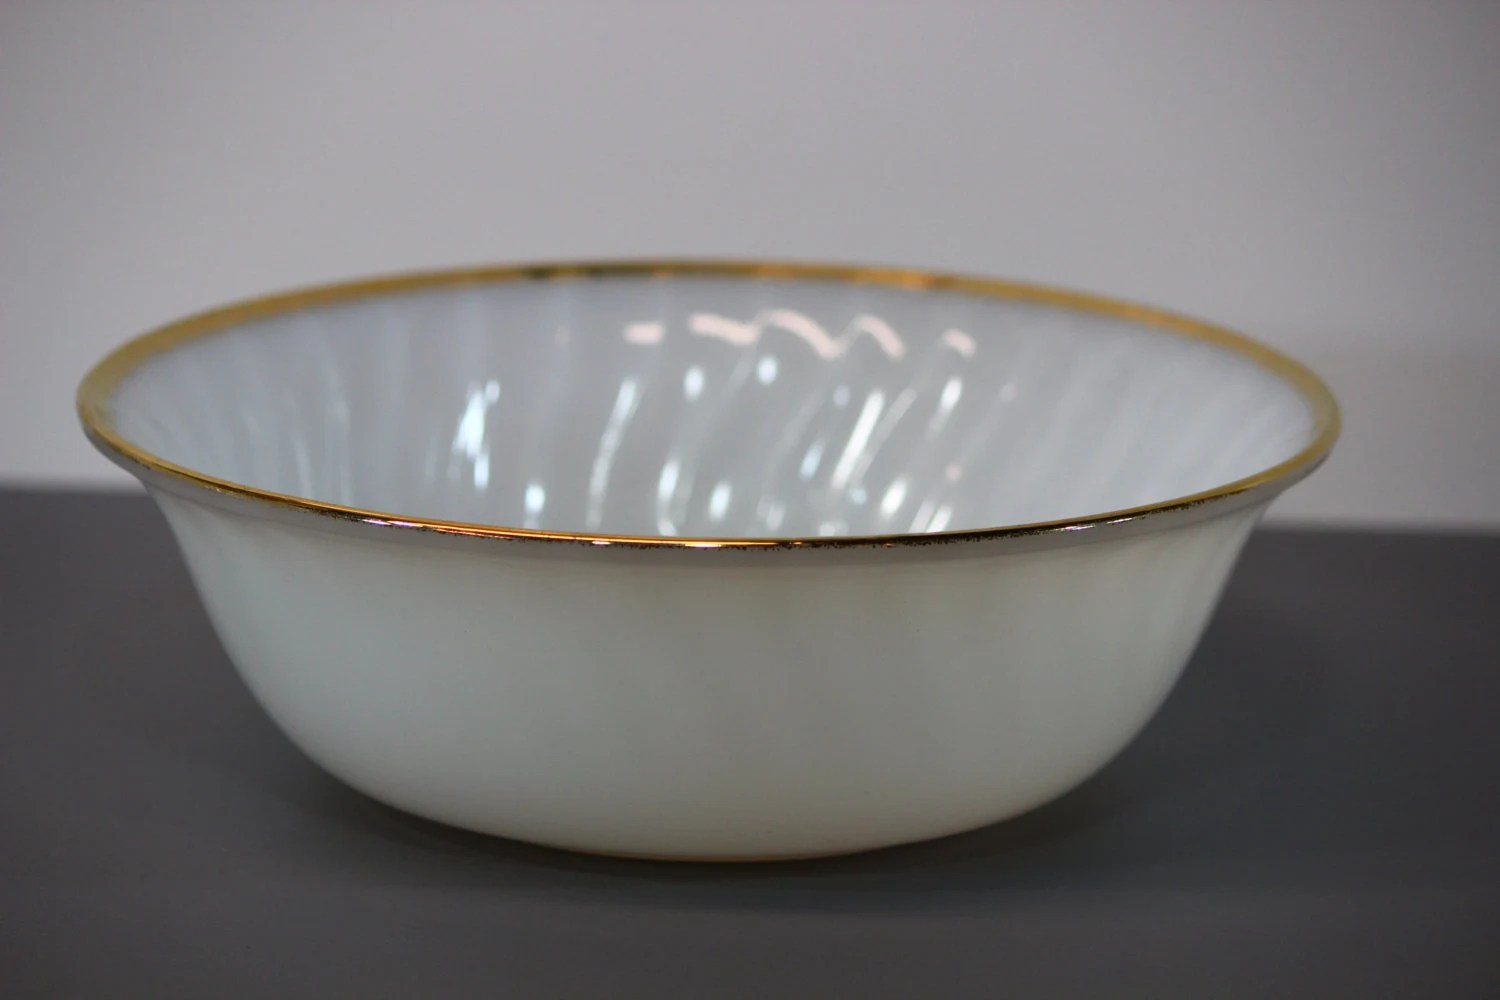 Vintage Fire King Ware Milk Galss Serving Bowl With Gold